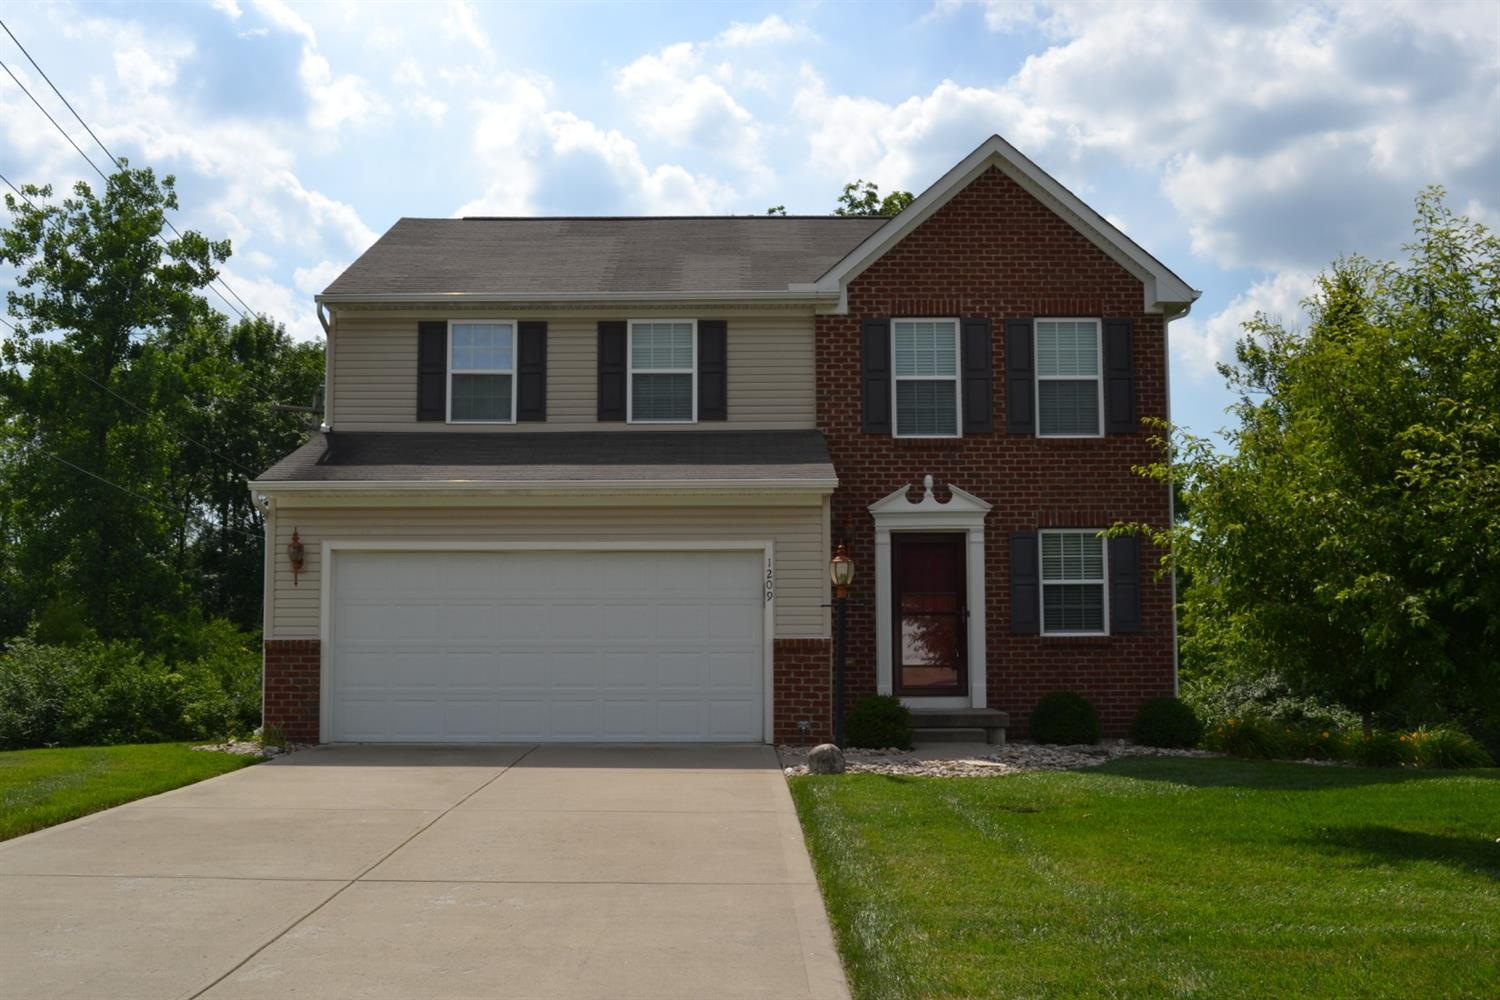 Property for sale at 1209 Turfway Court, Lebanon,  Ohio 45036